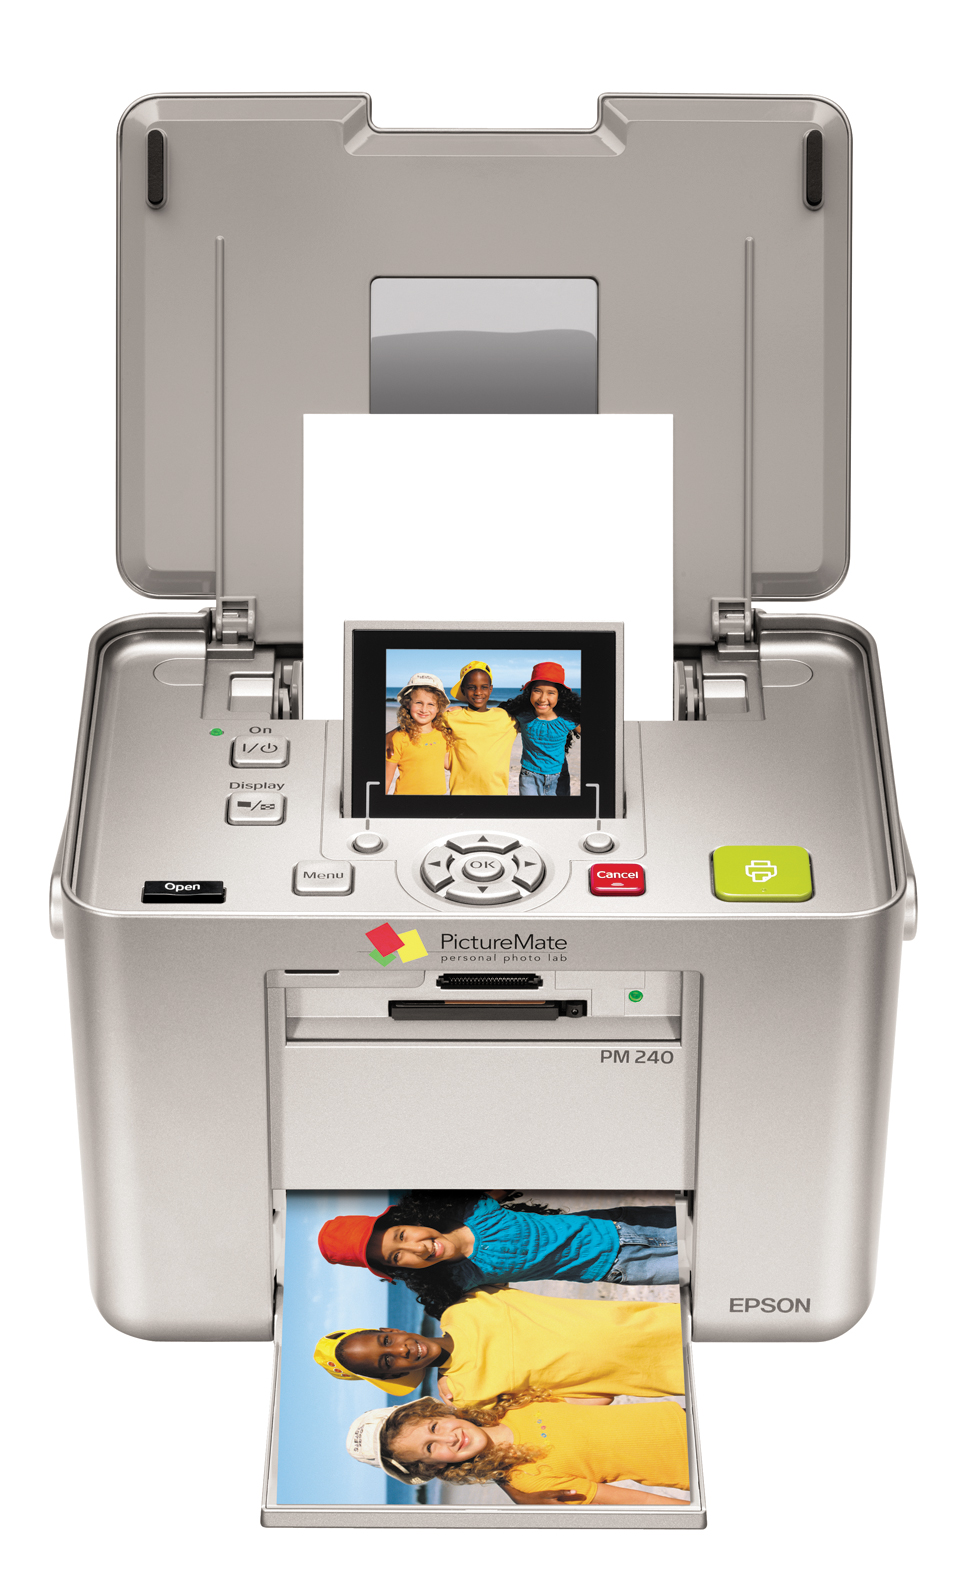 EPSON PICTUREMATE 240 WINDOWS 10 DRIVER